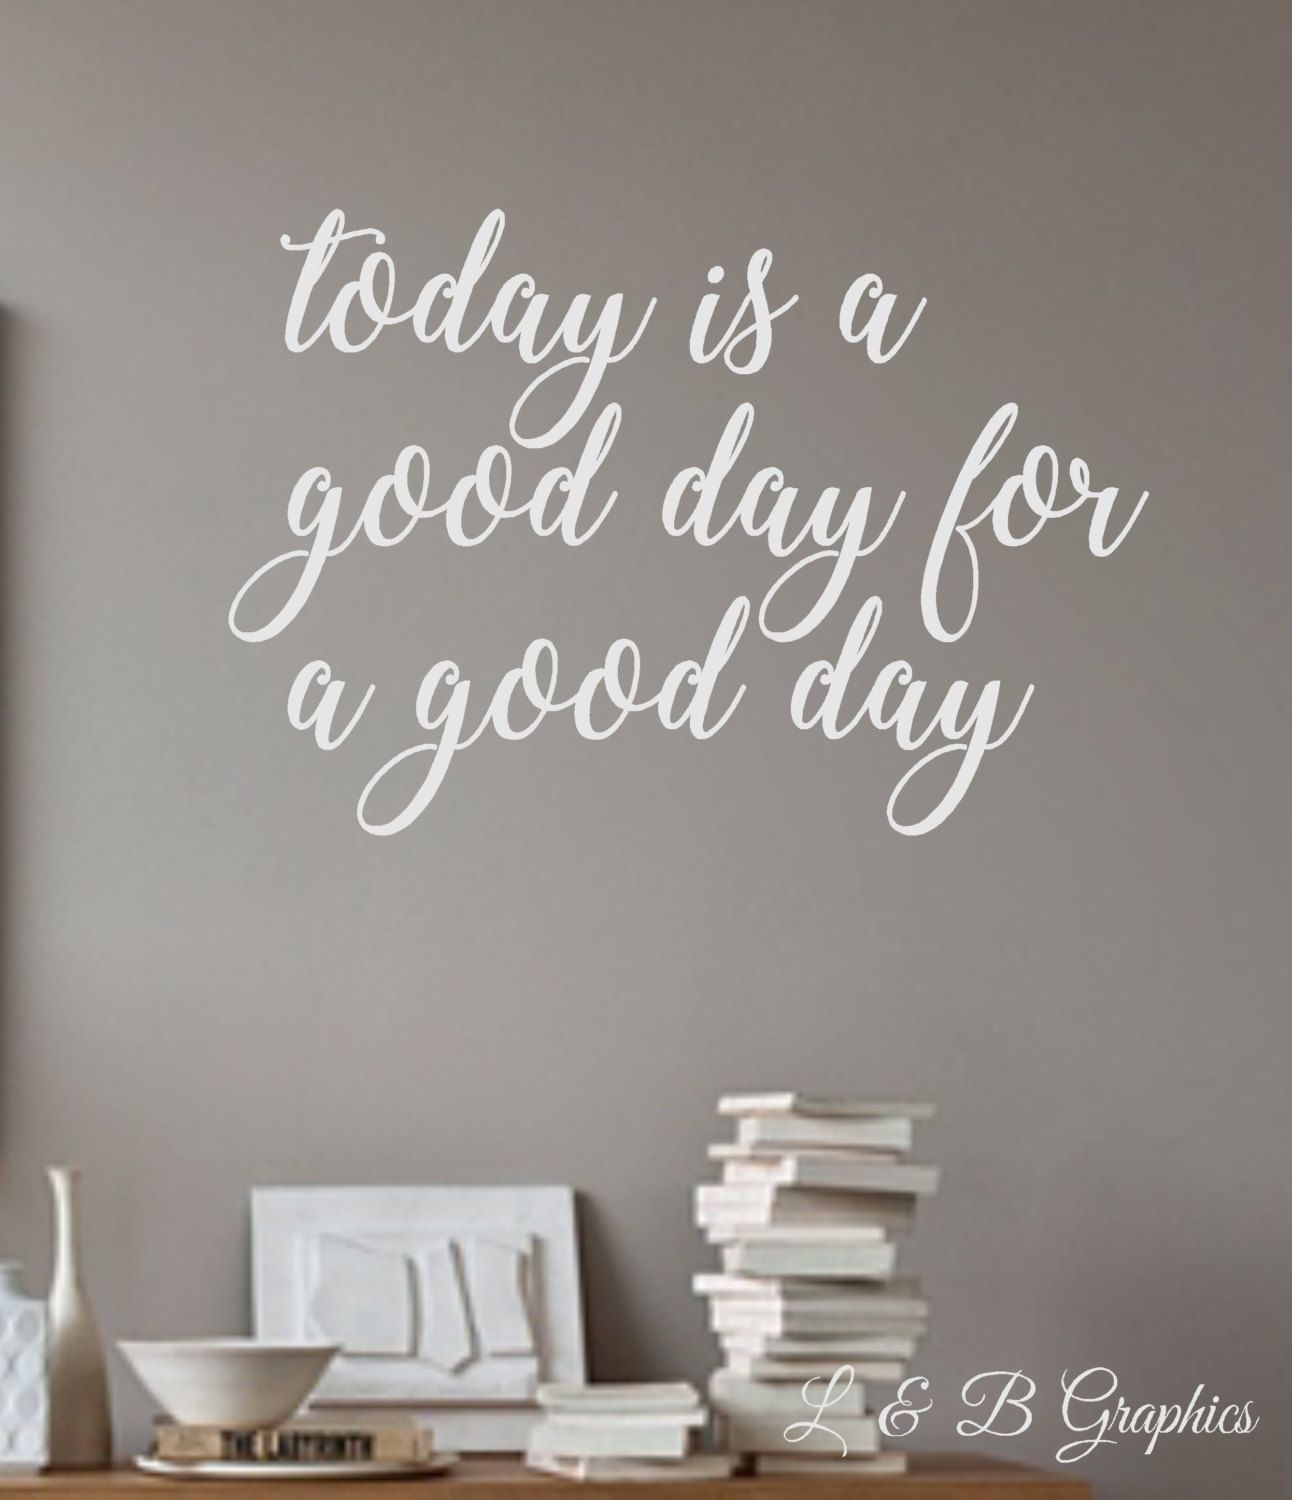 Vinyl Wall Decal  Today Is A Good Day For A Good Day Wall Quotes  Decals  Words For The Wall  French Country Decor  Home Decor By Landbgraphics On  Etsy